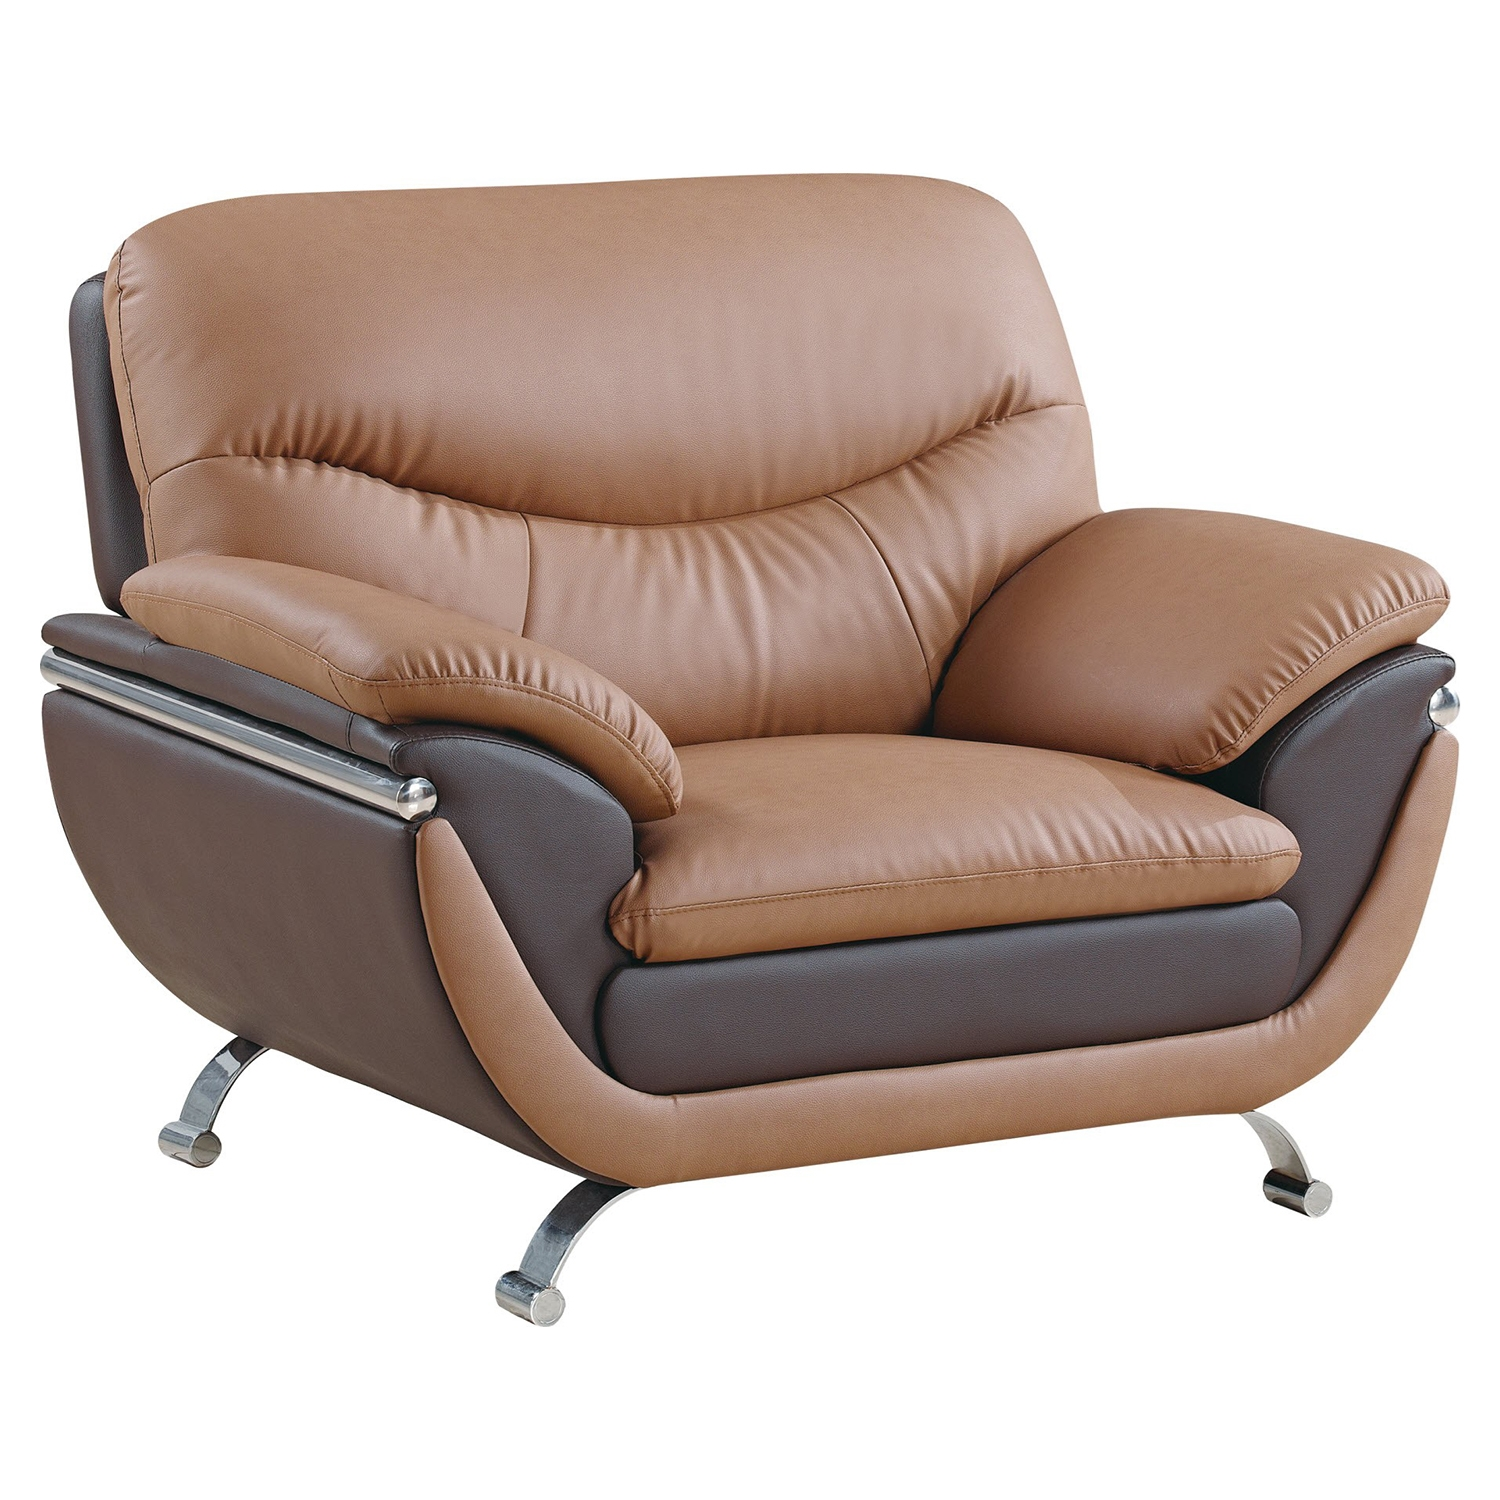 Chair  - Light Brown and Dark Brown Leather, Chrome Legs - GLO-U2106-RV-CH